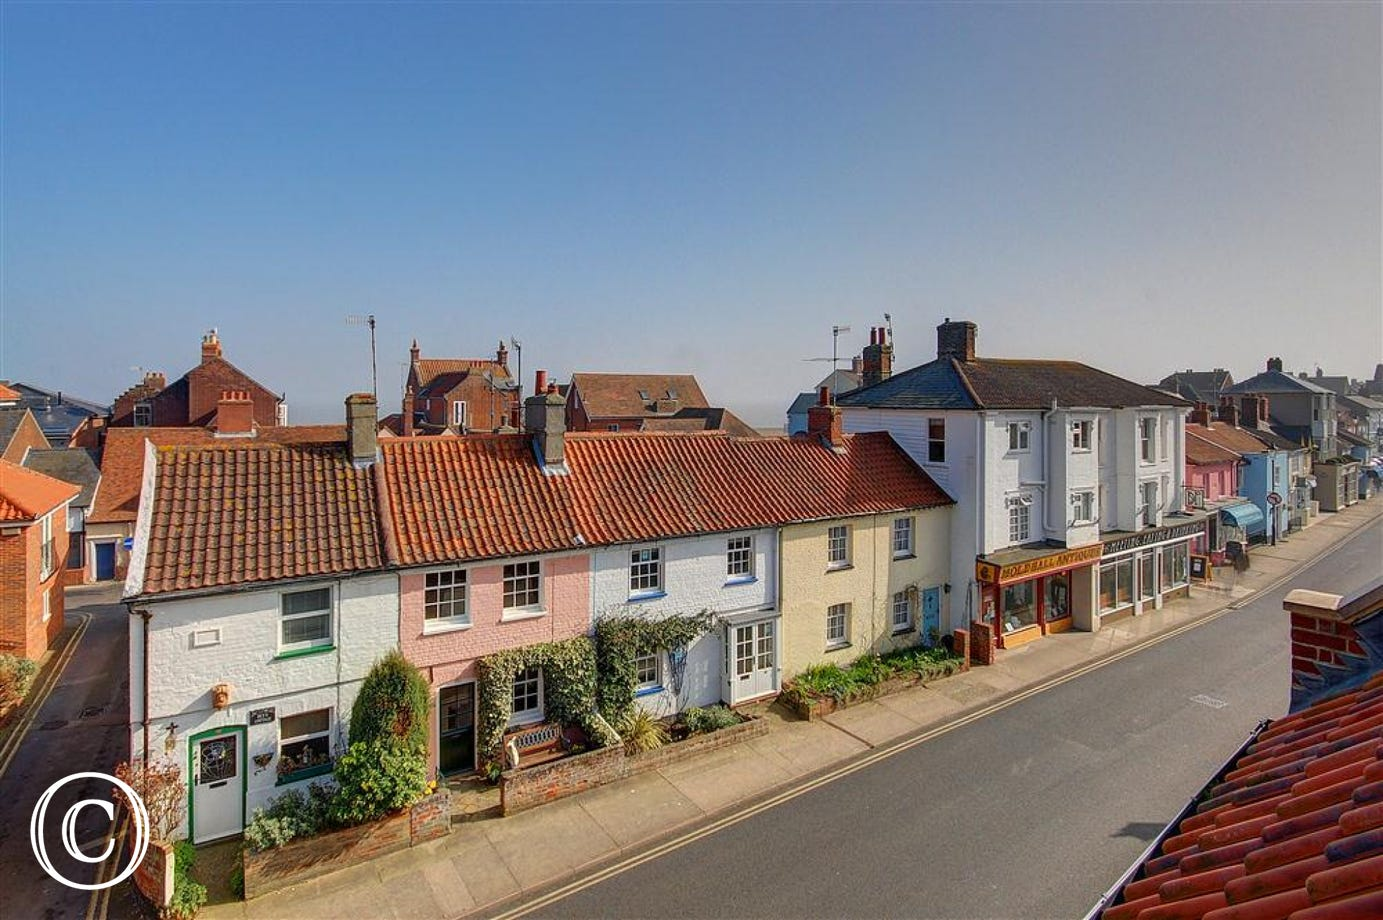 Soak up the atmosphere of Aldeburgh whilst gazing out of the window at Aldeburgh Dawn.